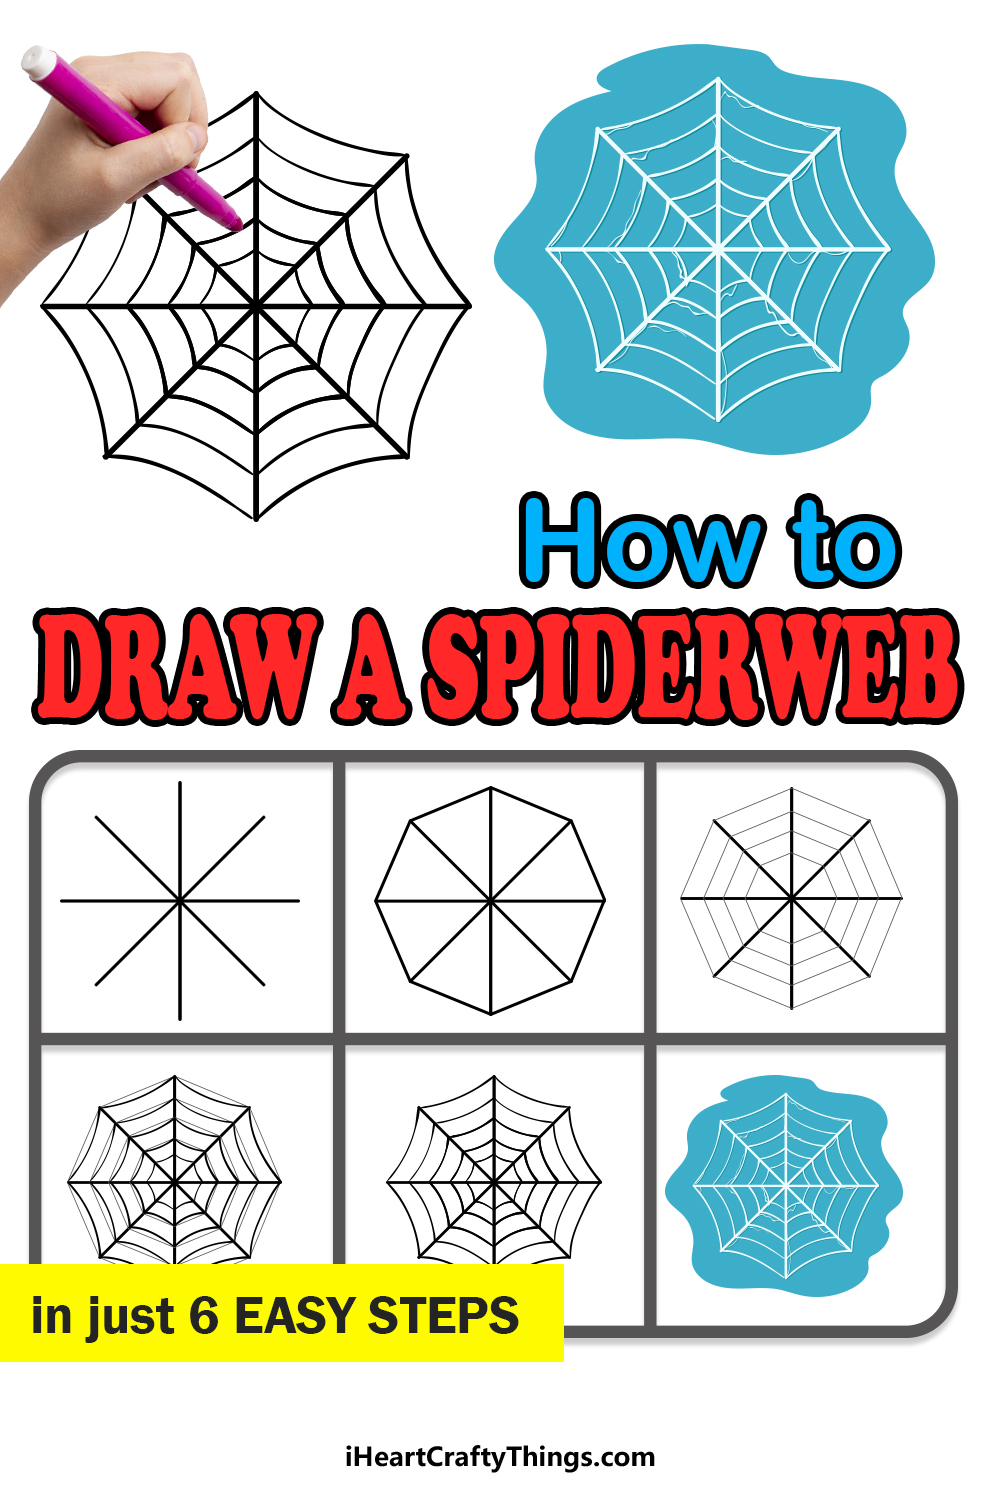 how to draw a spiderweb in 6 easy steps